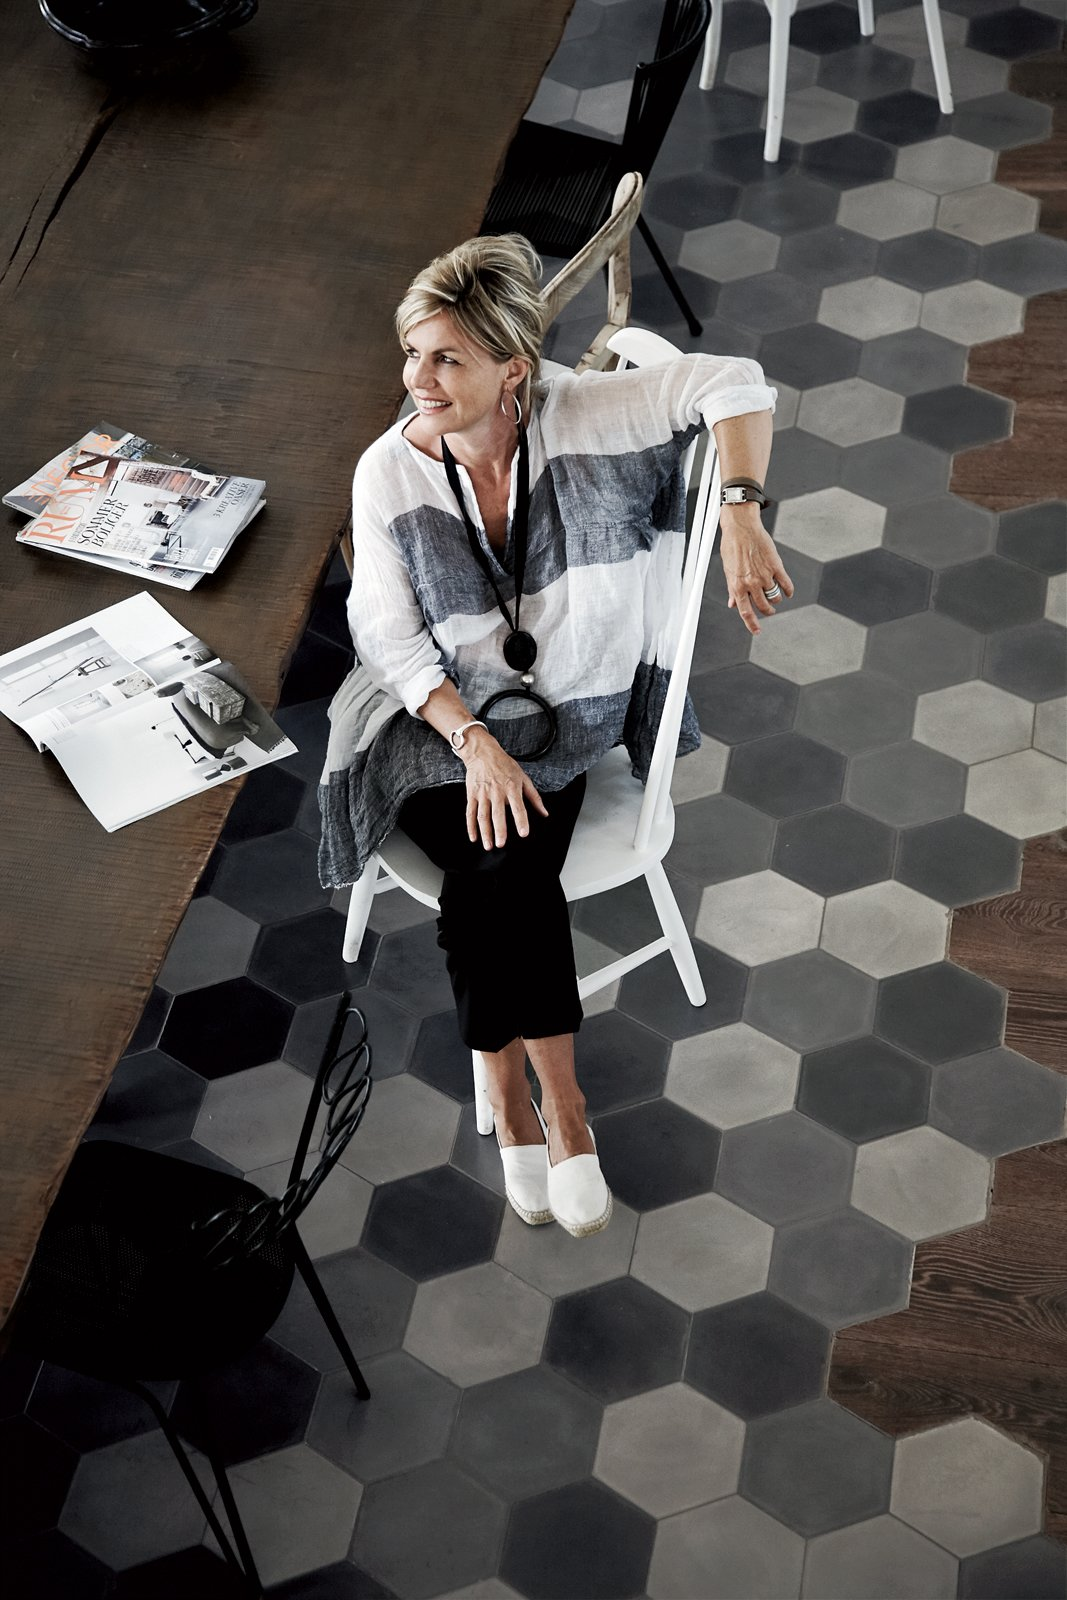 Andrea Falkner-Campi and her husband commissioned designer Paola Navone to renovate an old tobacco factory in Spello, Italy. Paola Navone's Industrial Style Renovation in Italy - Photo 2 of 11